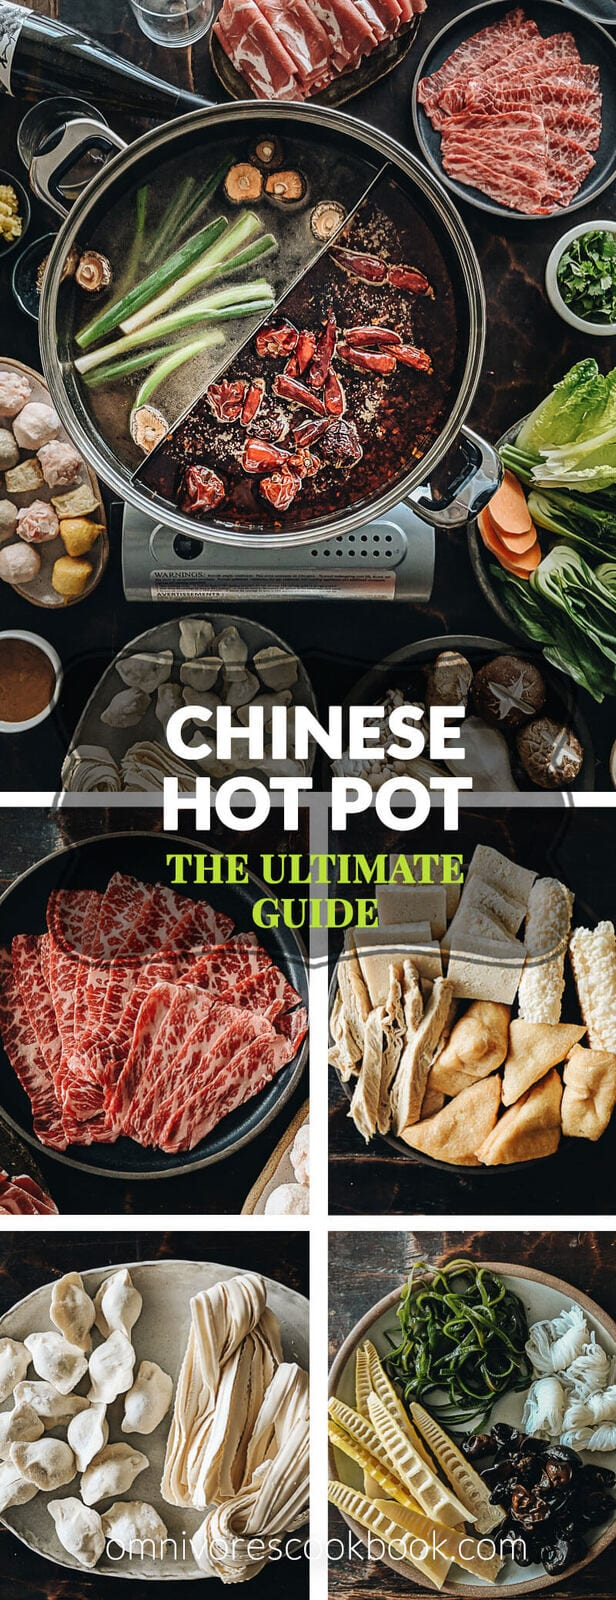 The ultimate Chinese hot pot guide that explains the different types of broth, dipping sauces, ingredients, and equipment, plus all you need to know to host a successful hot pot party. #ChineseNewYear